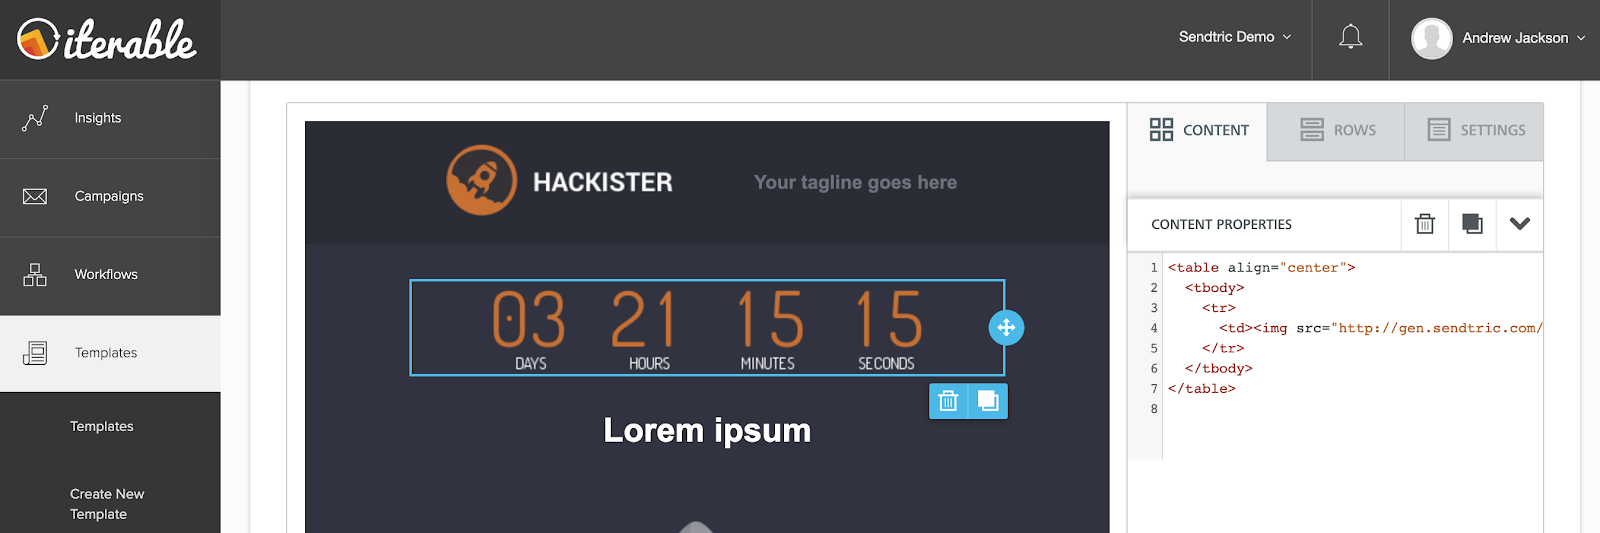 Centered Sendtric timer in Iterable